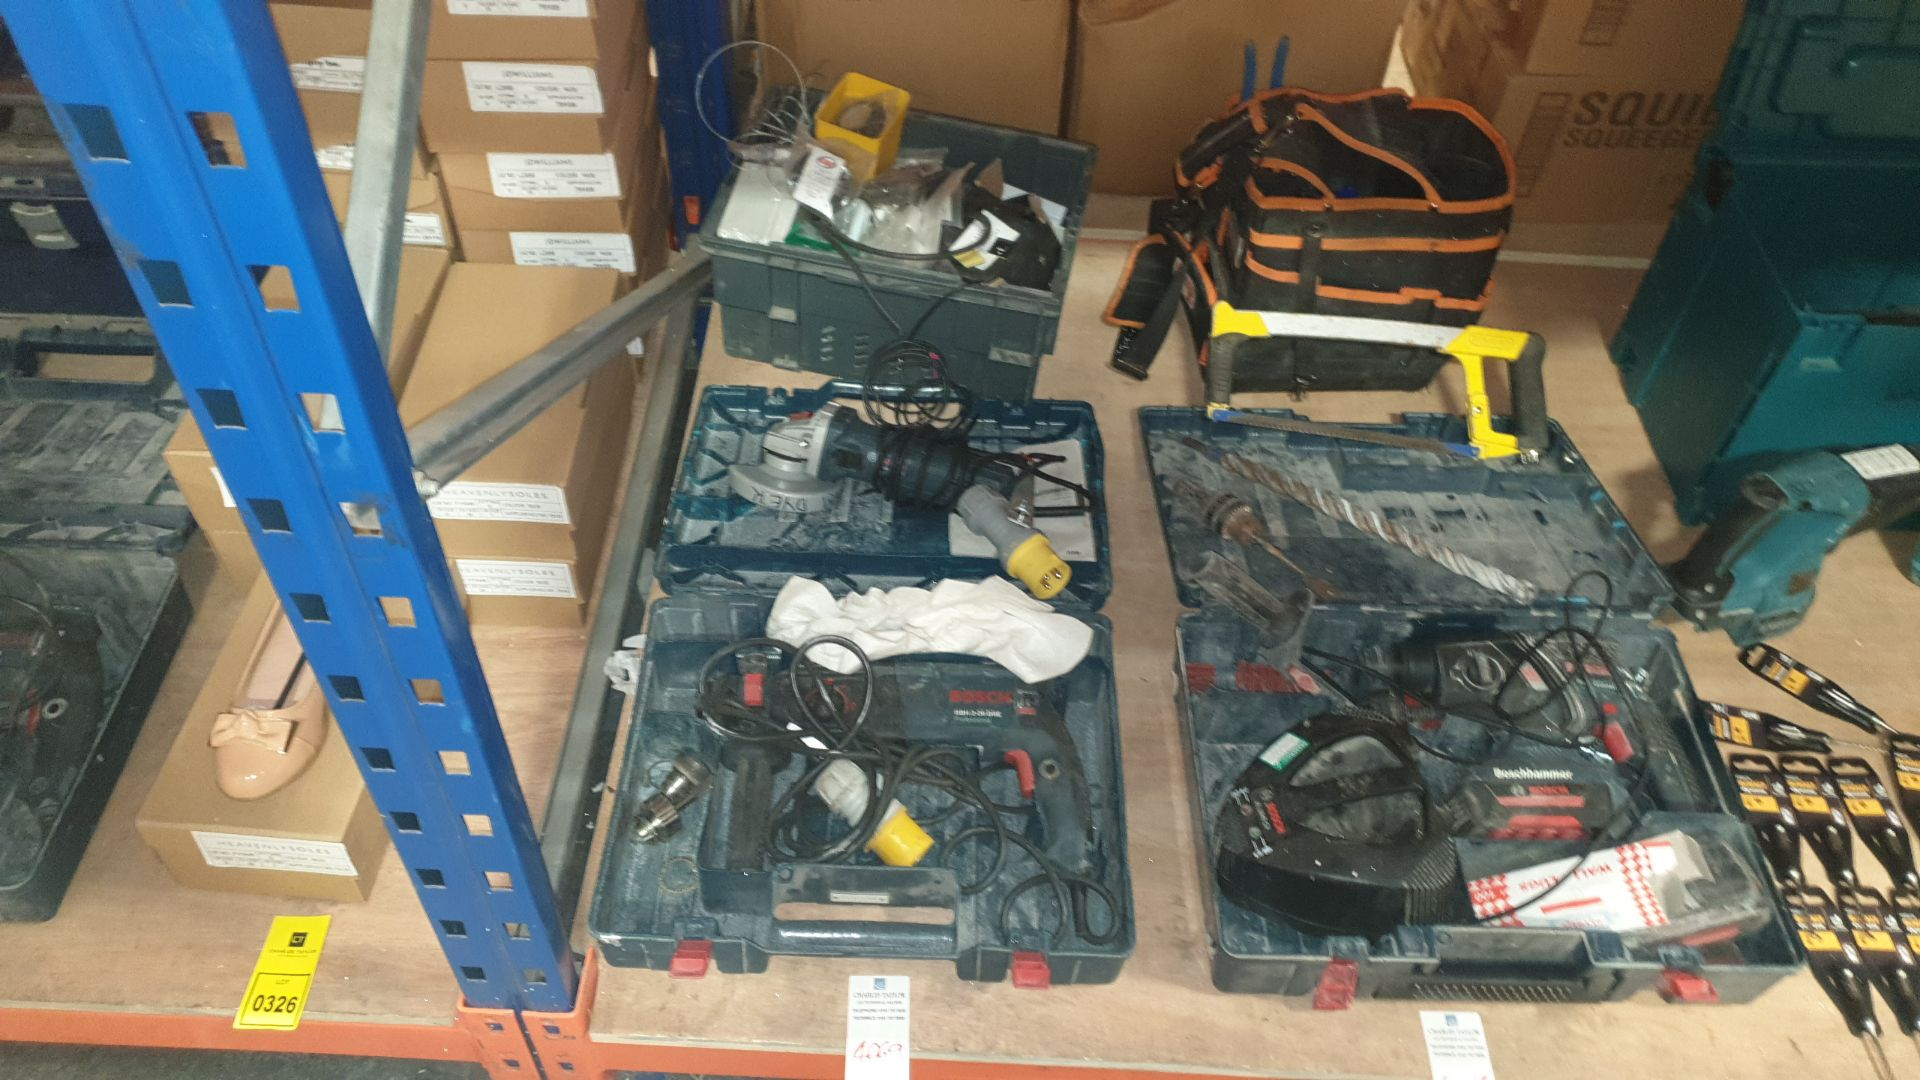 MIXED TOOL LOT CONTAINING BOSCH HAMMER DRILL, BOSCH ANGLE GRINDER, DRILL ACCESSORIES AND BOX